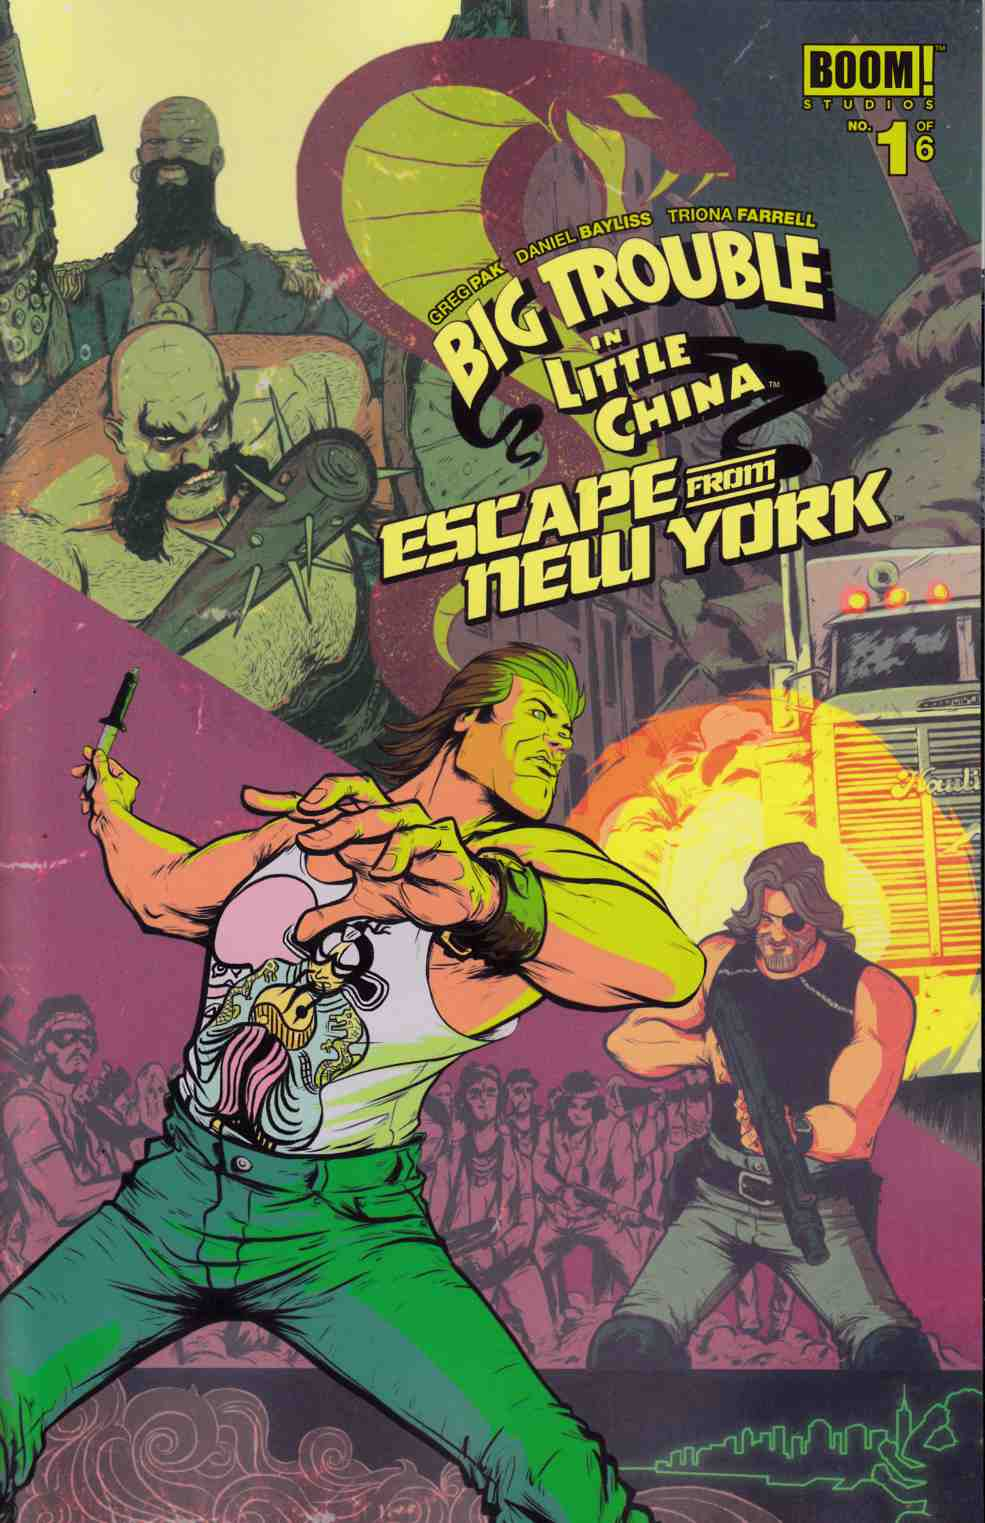 Big Trouble In Little China Escape From New York #1 Cover A [Boom Comic] THUMBNAIL